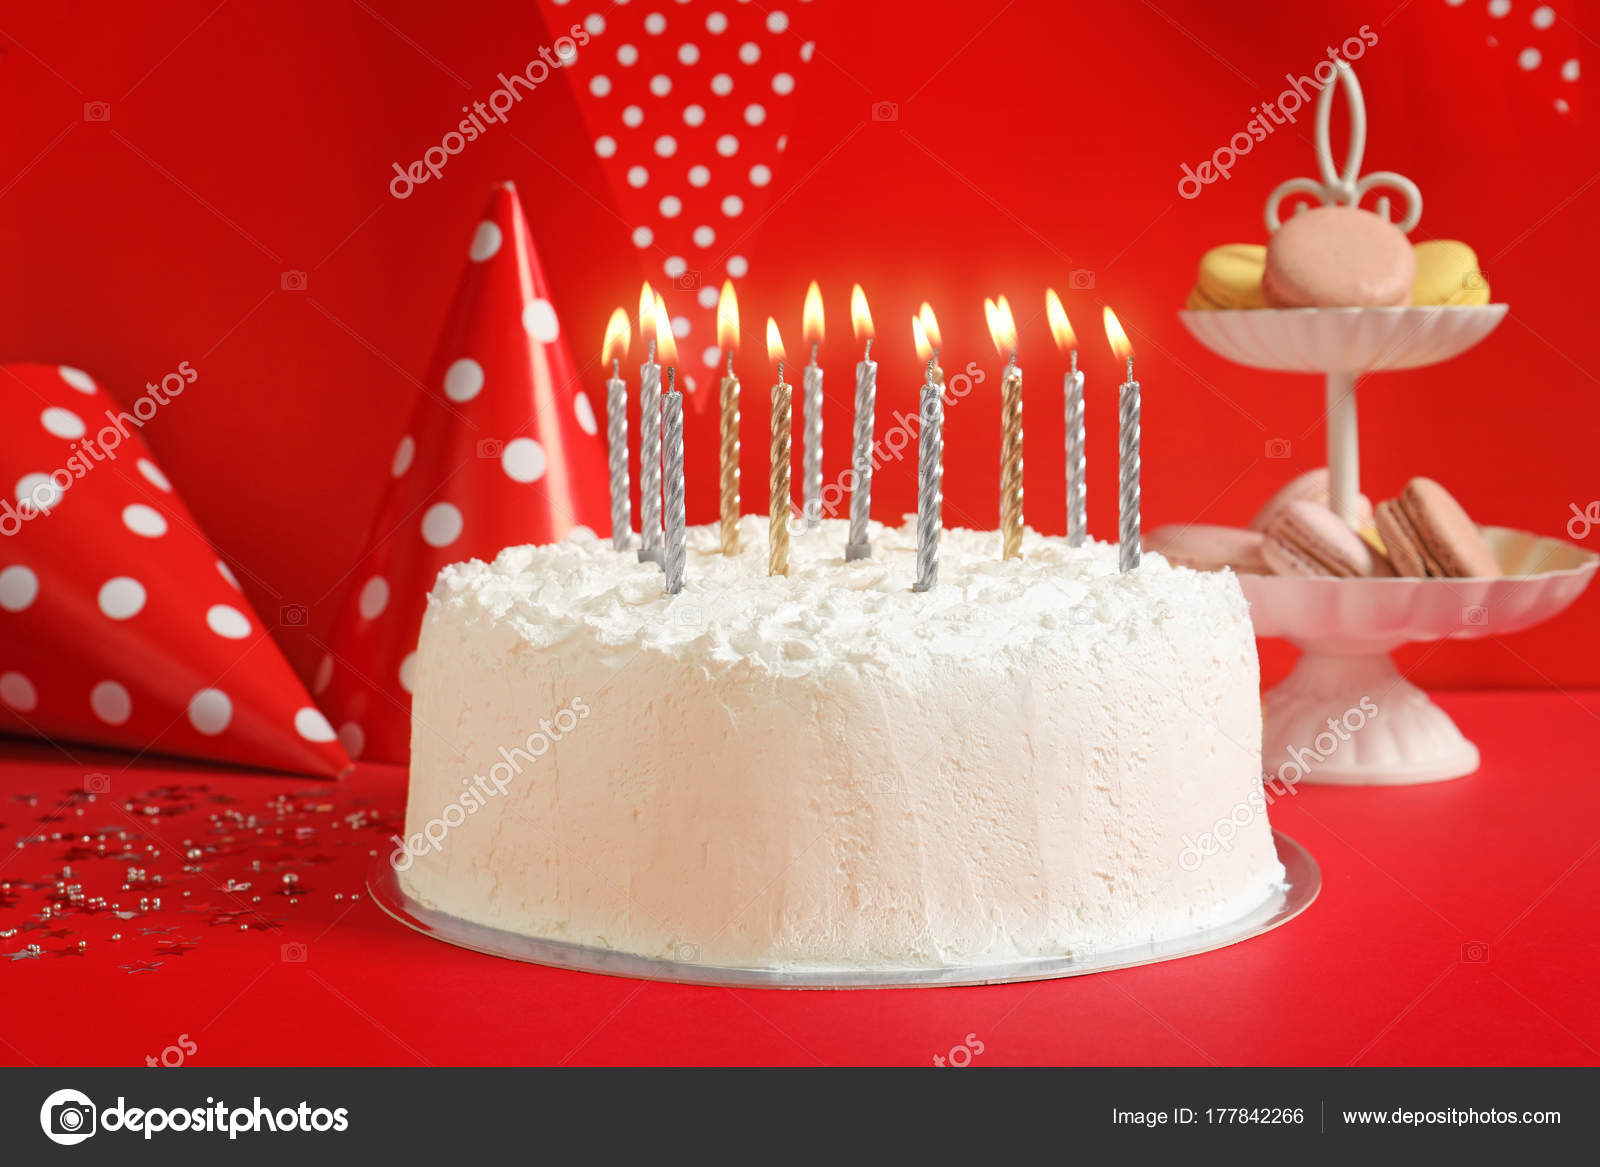 Birthday Cake With Candles On Table Against Red Wall Stock Image